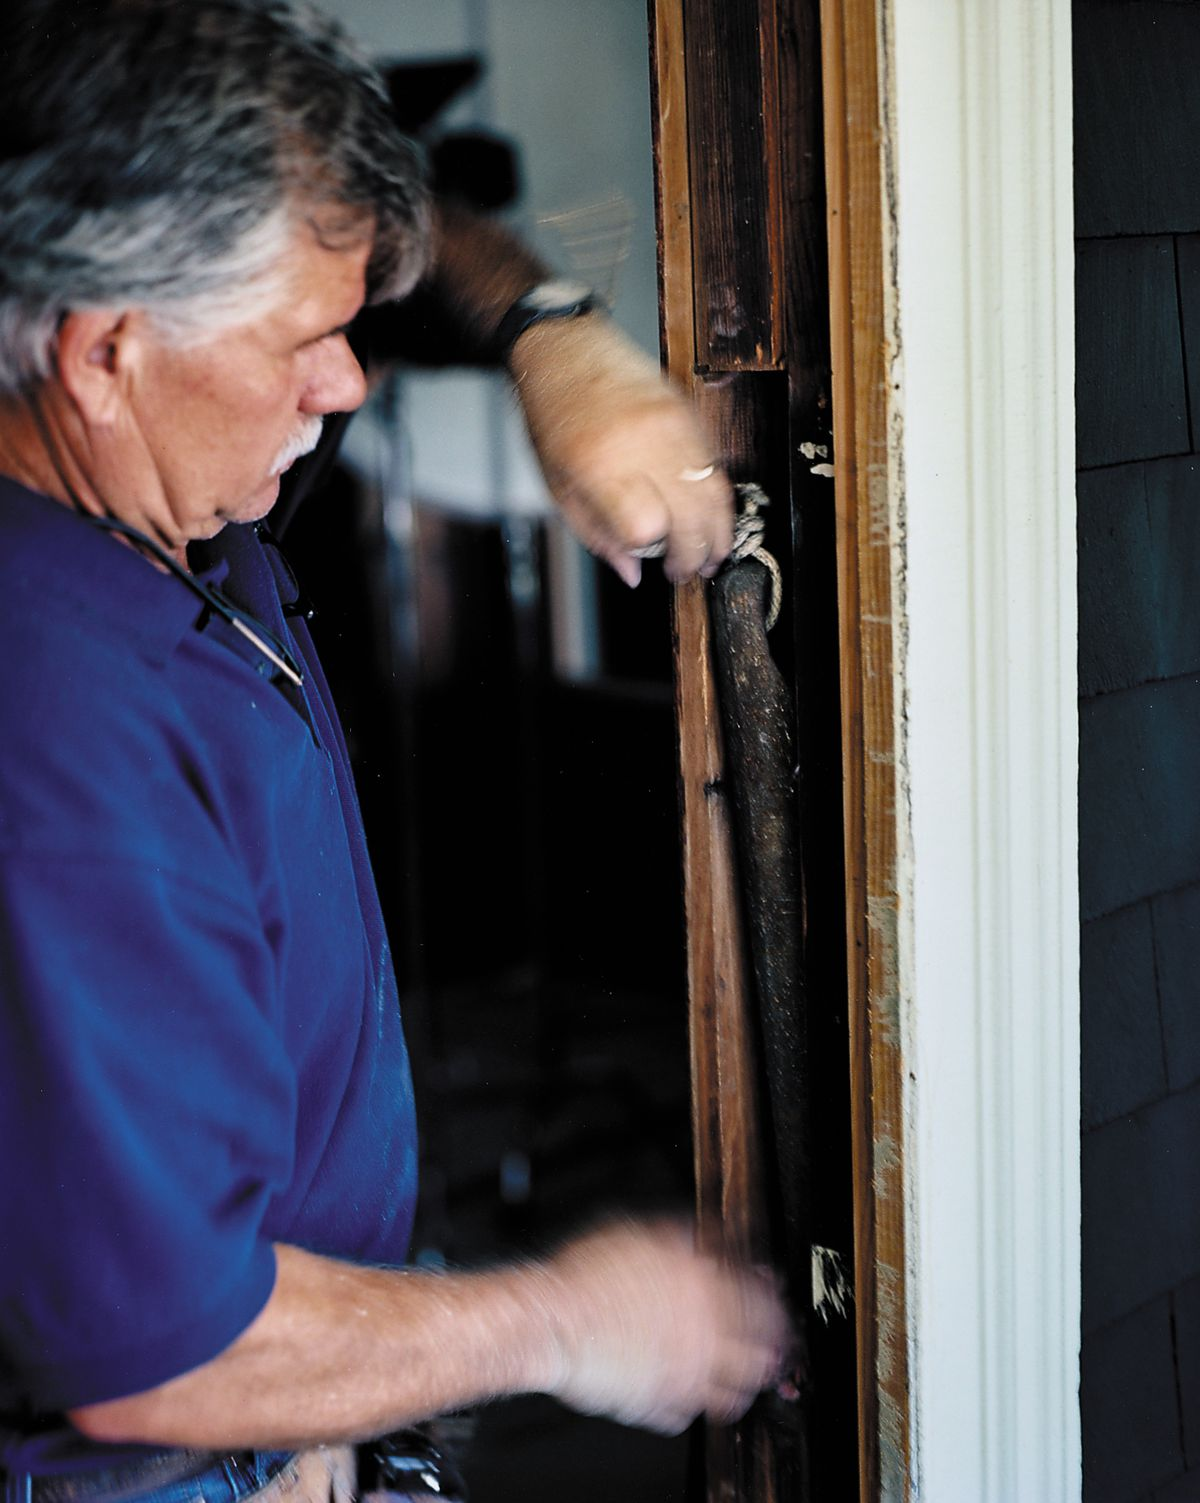 Man Removes Old Sash Weights Off Window